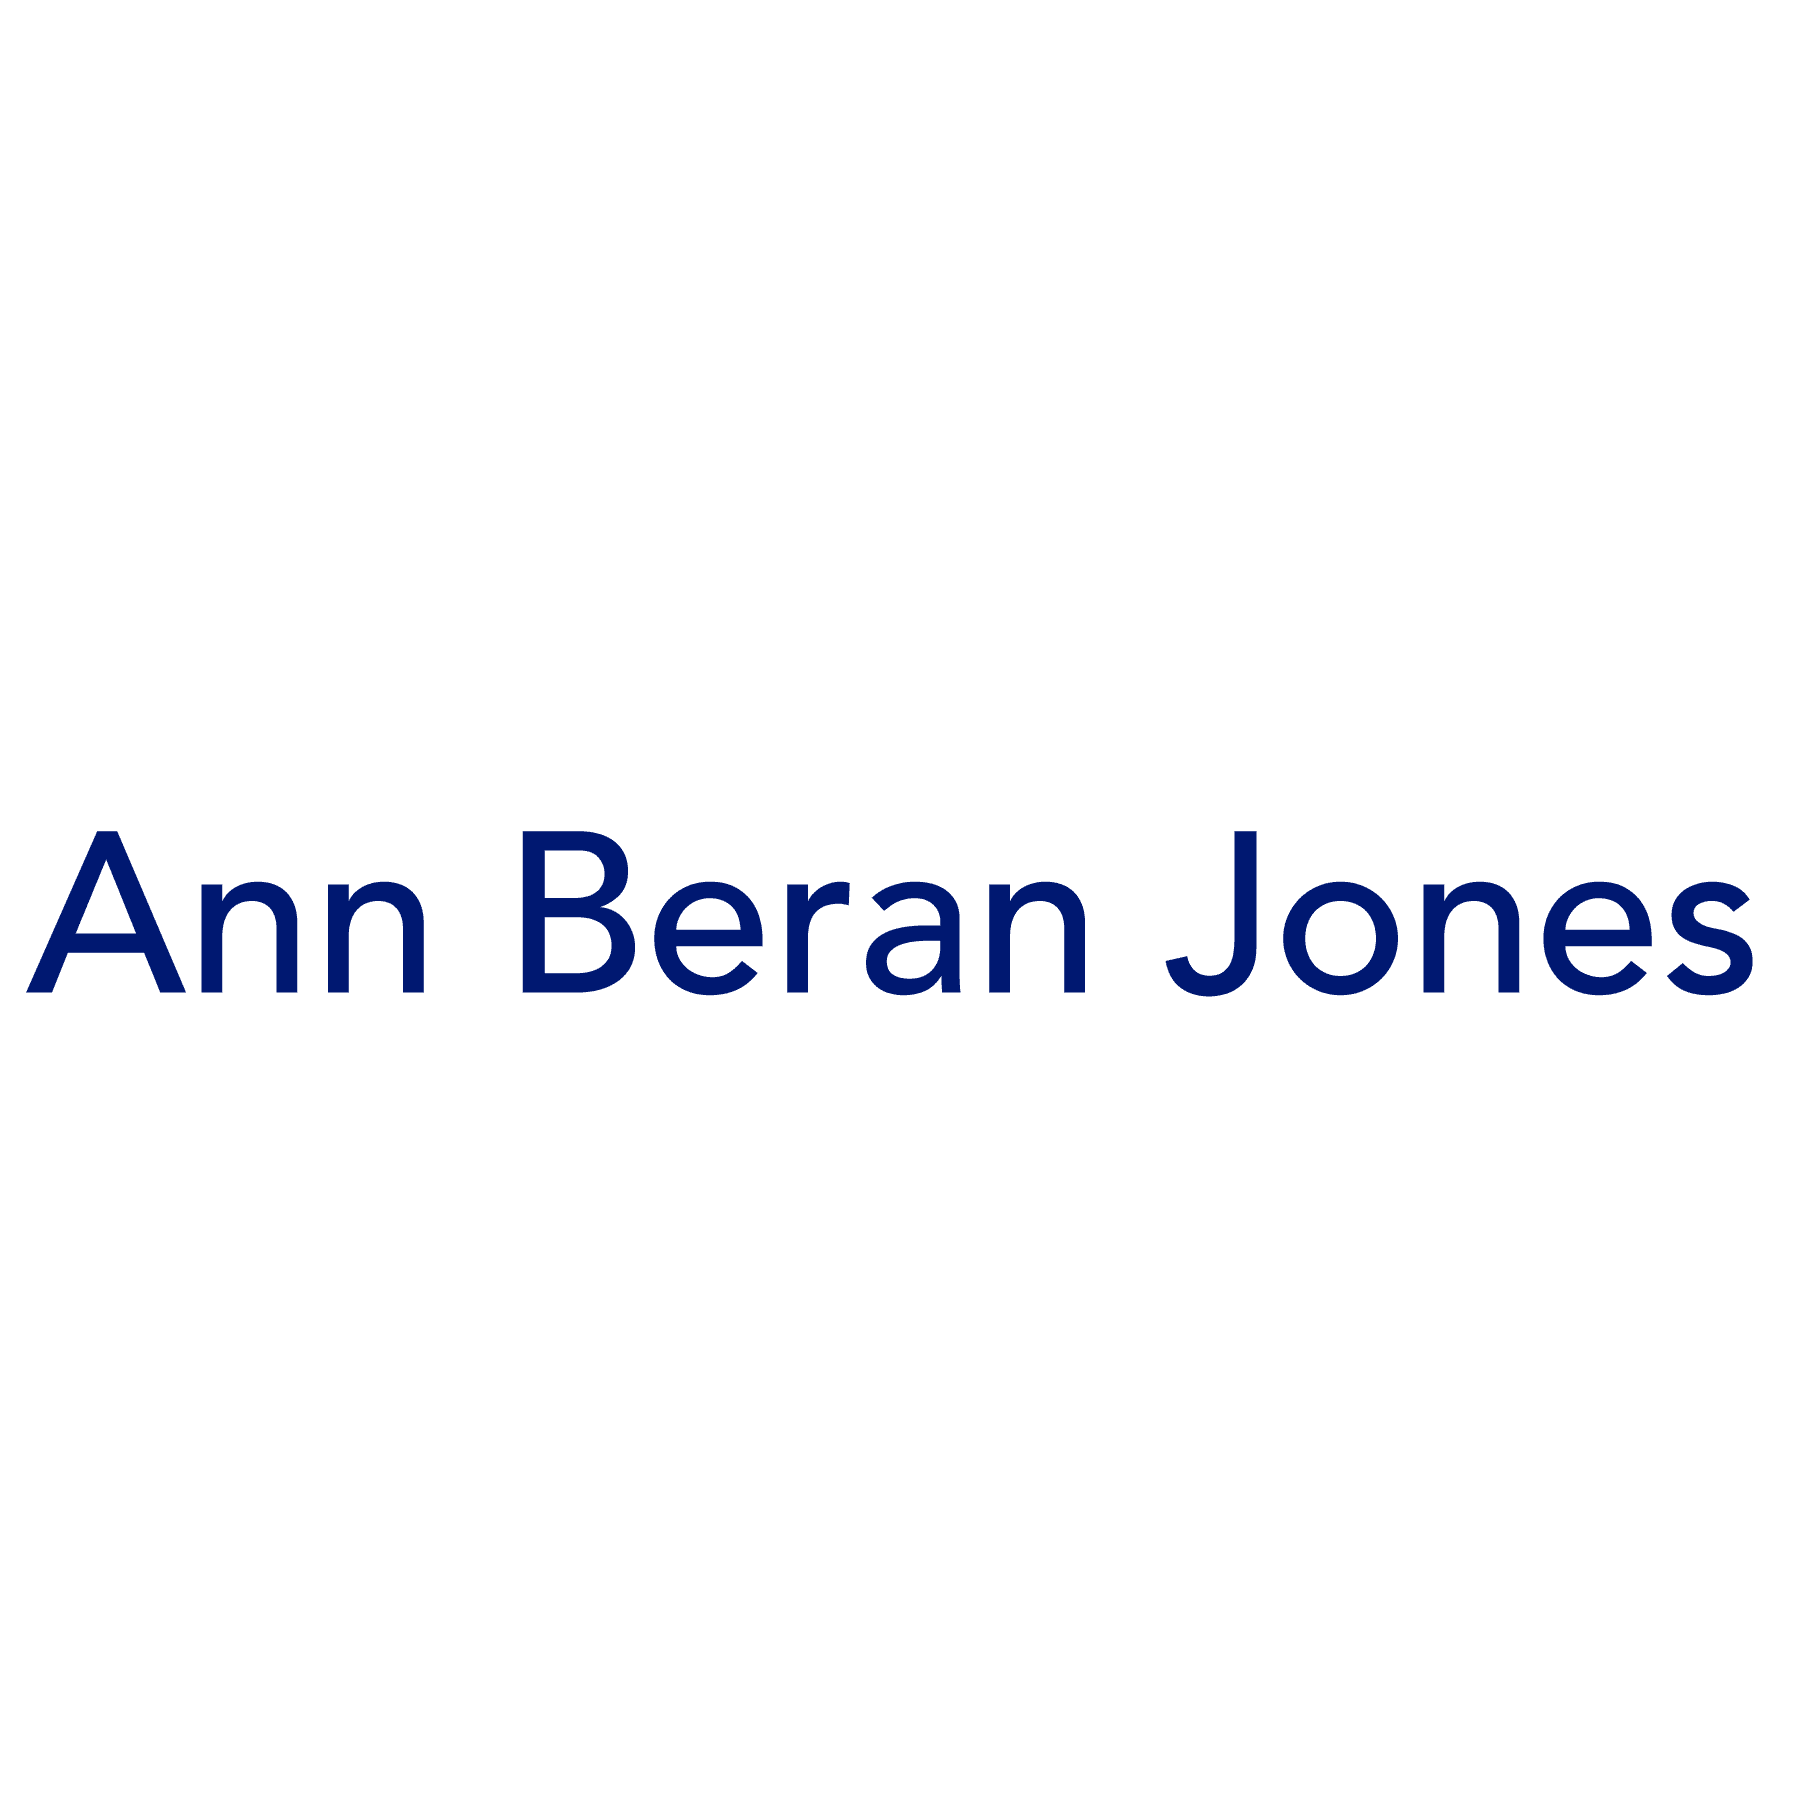 Ann Beran Jones